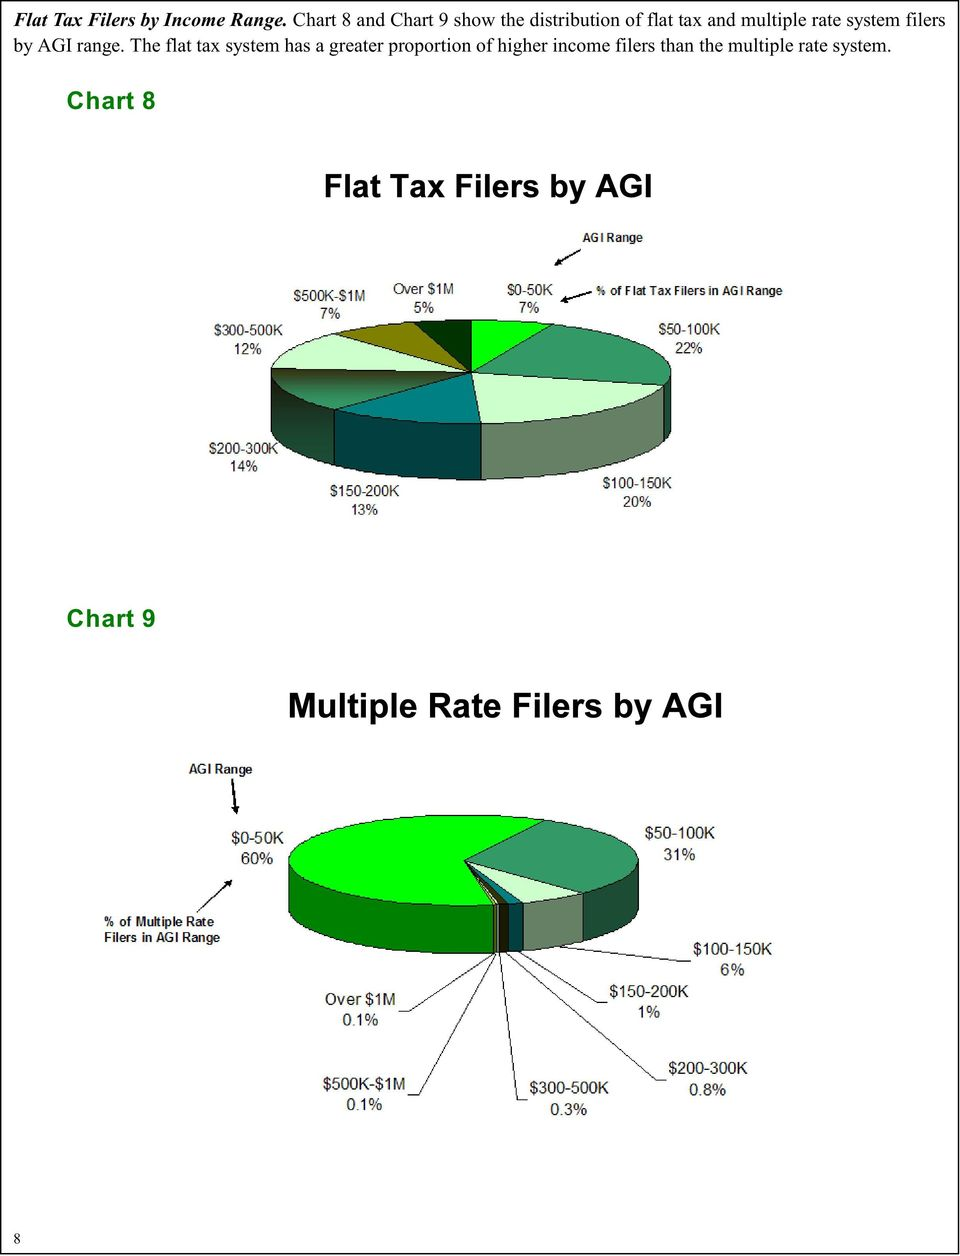 multiple rate system filers by AGI range.